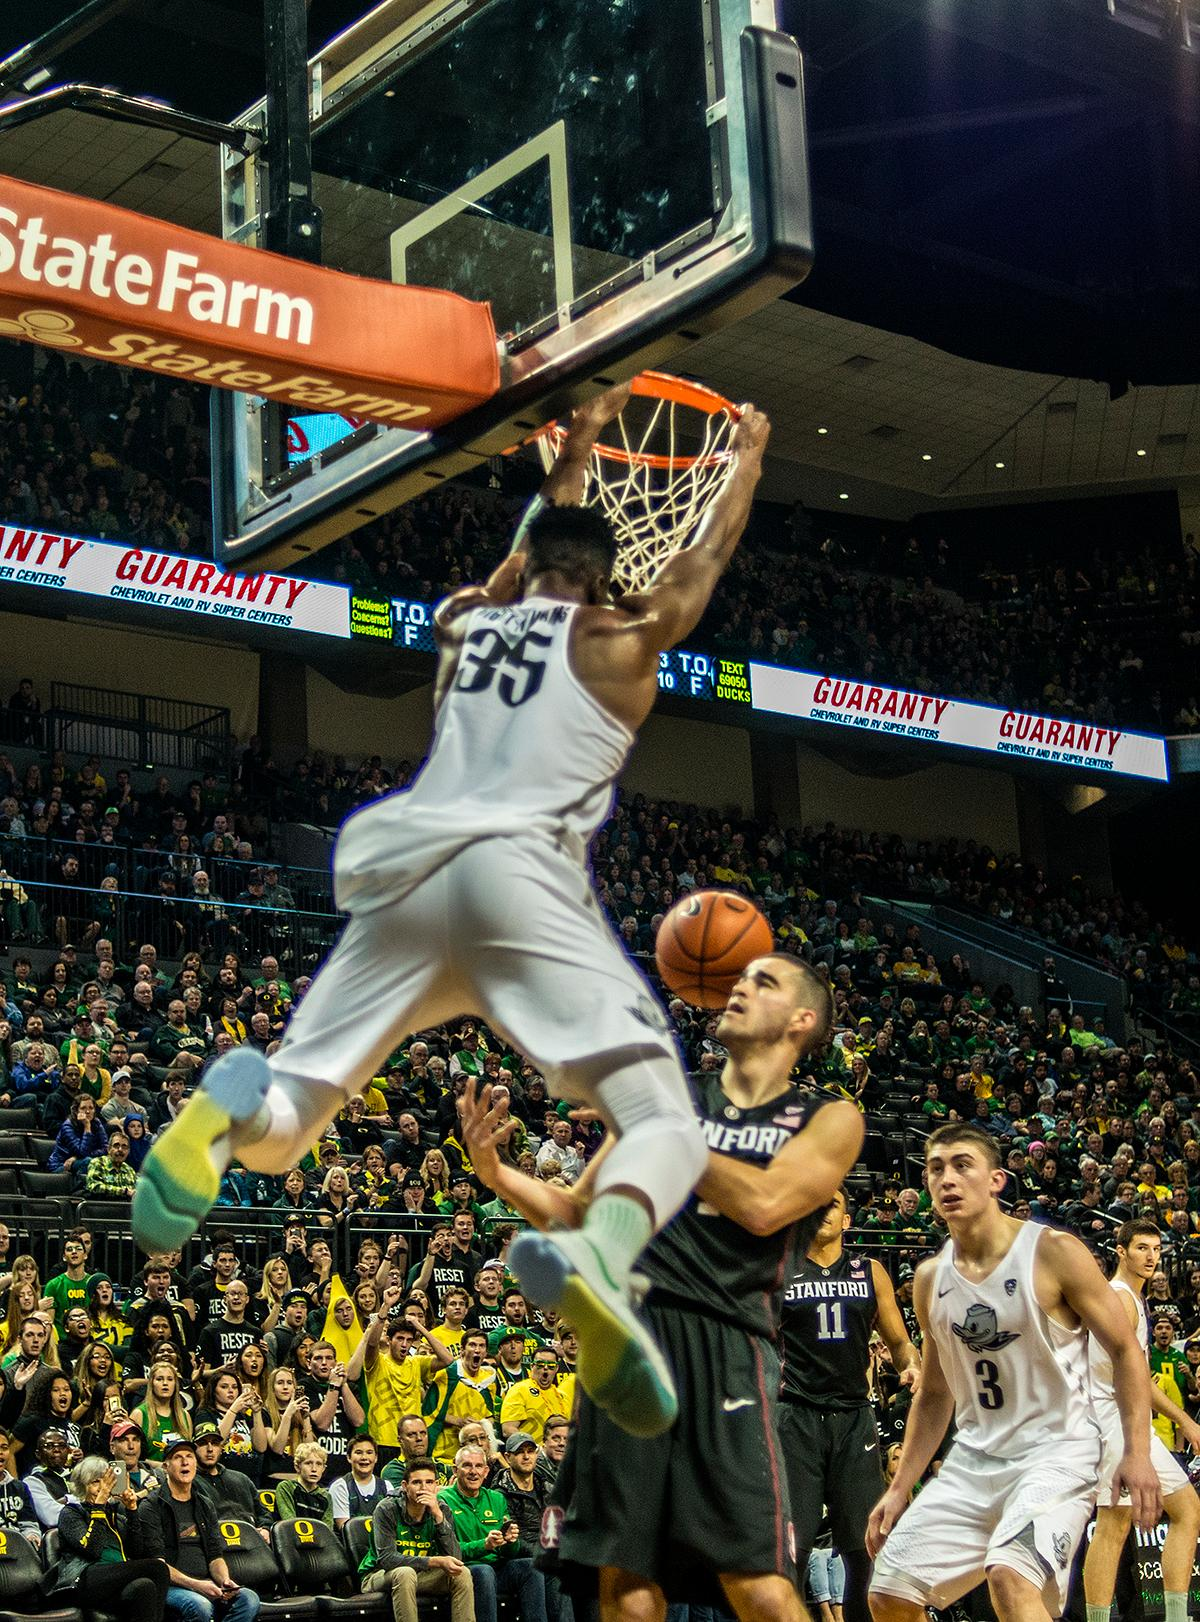 Oregon Ducks Kavell Bigby-Williams (#35) dunks the ball in the second half of the game. The Oregon Ducks continued their winning streak by defeating Stanford (69-52) on Saturday night at Matthew Knight Arena. Chris Boucher led the Ducks with 16 points and 10 rebounds while Dylan Ennis added 15 points. Photo by Rhianna Gelhart, Oregon News Lab